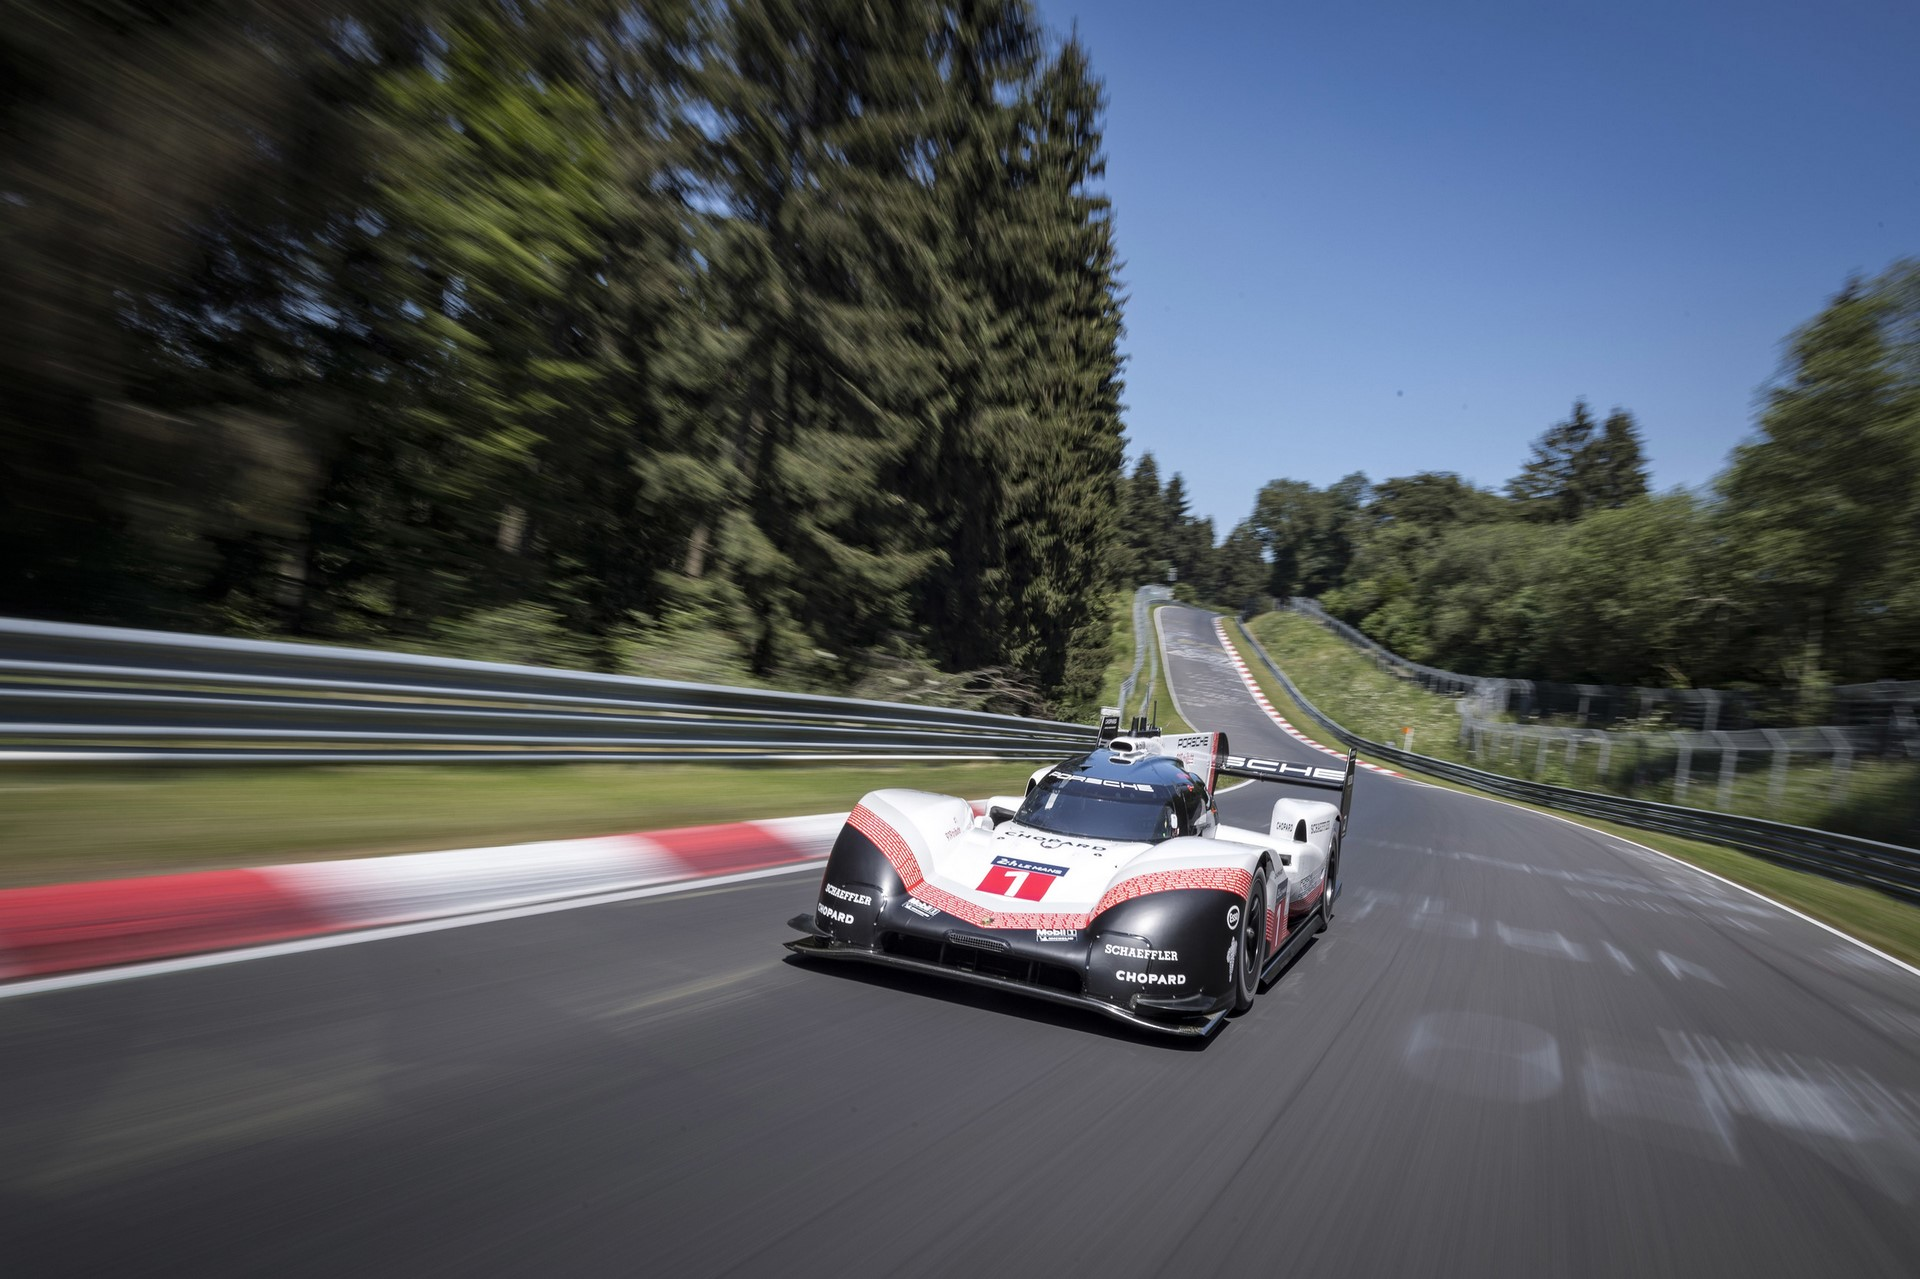 porsche-919-ring-lap-record-008-1